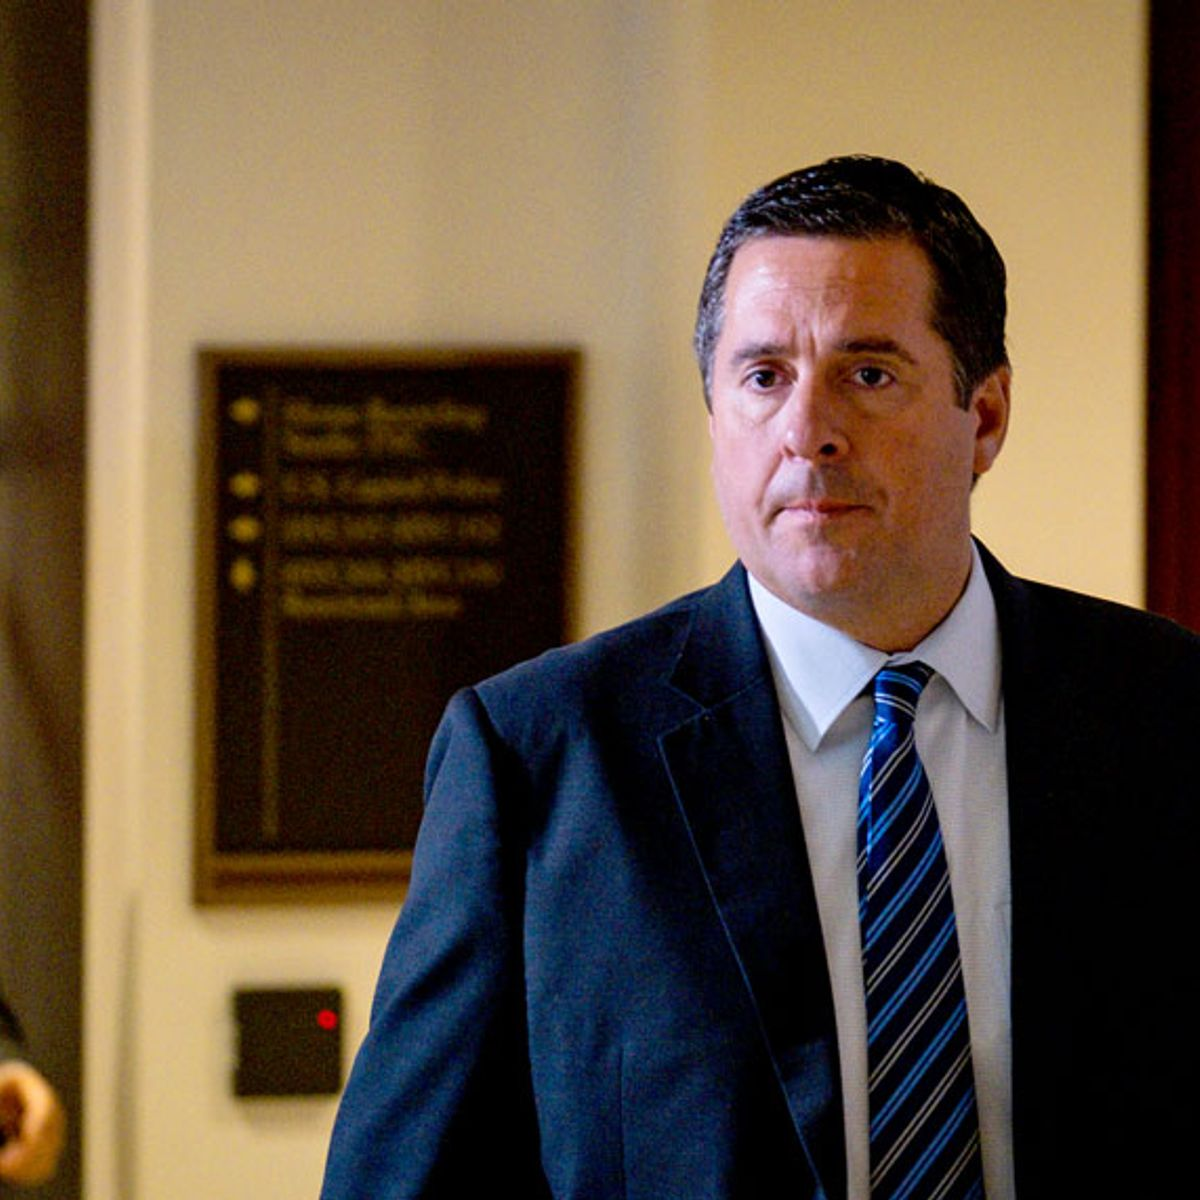 """Nunes claims he was """"stalked"""" after reporter asked questions about his role in Ukraine scheme"""